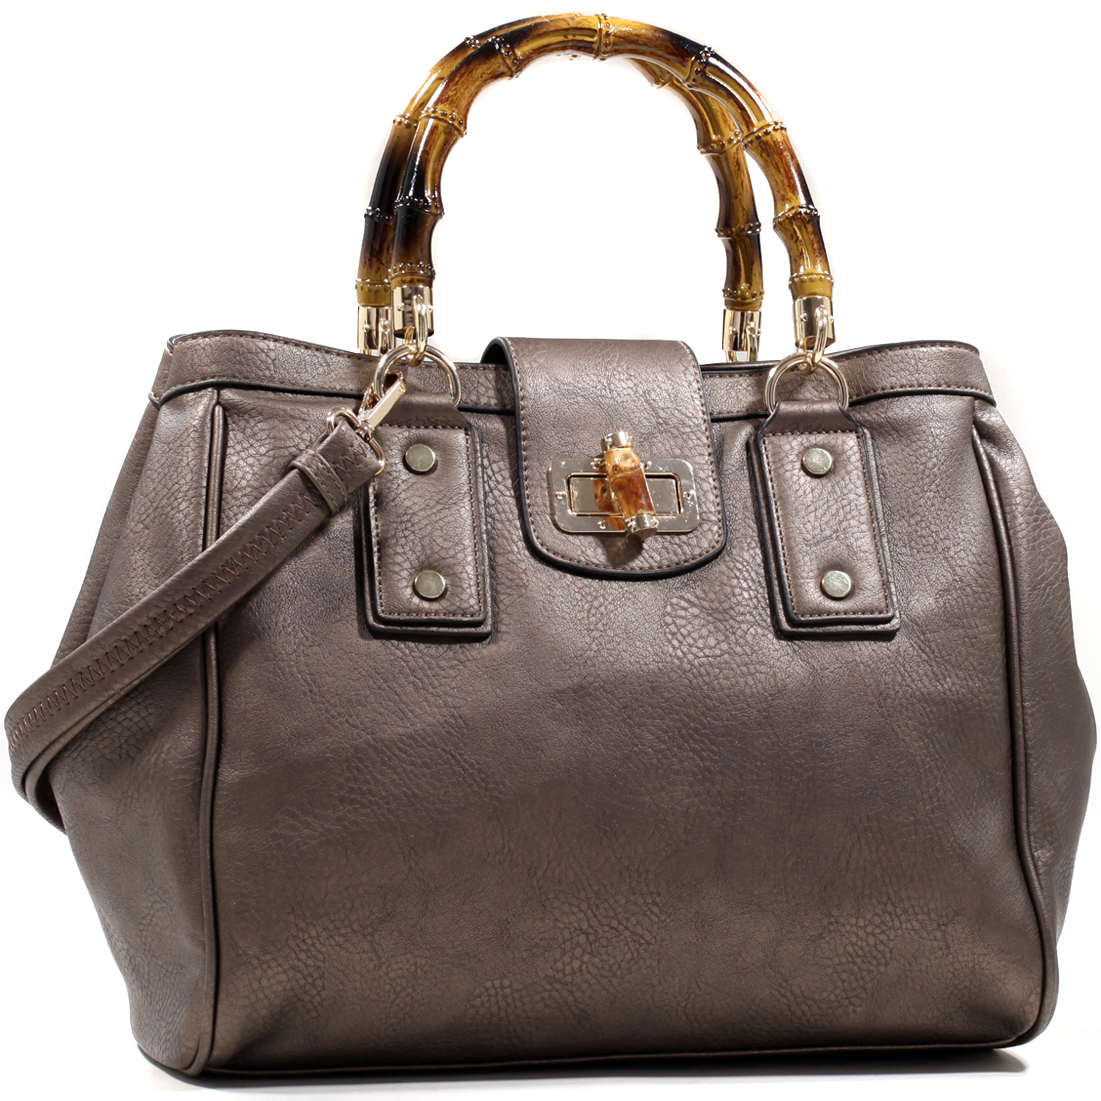 Classic Satchel w/ Wood Style Accents and Twist Lock Closure